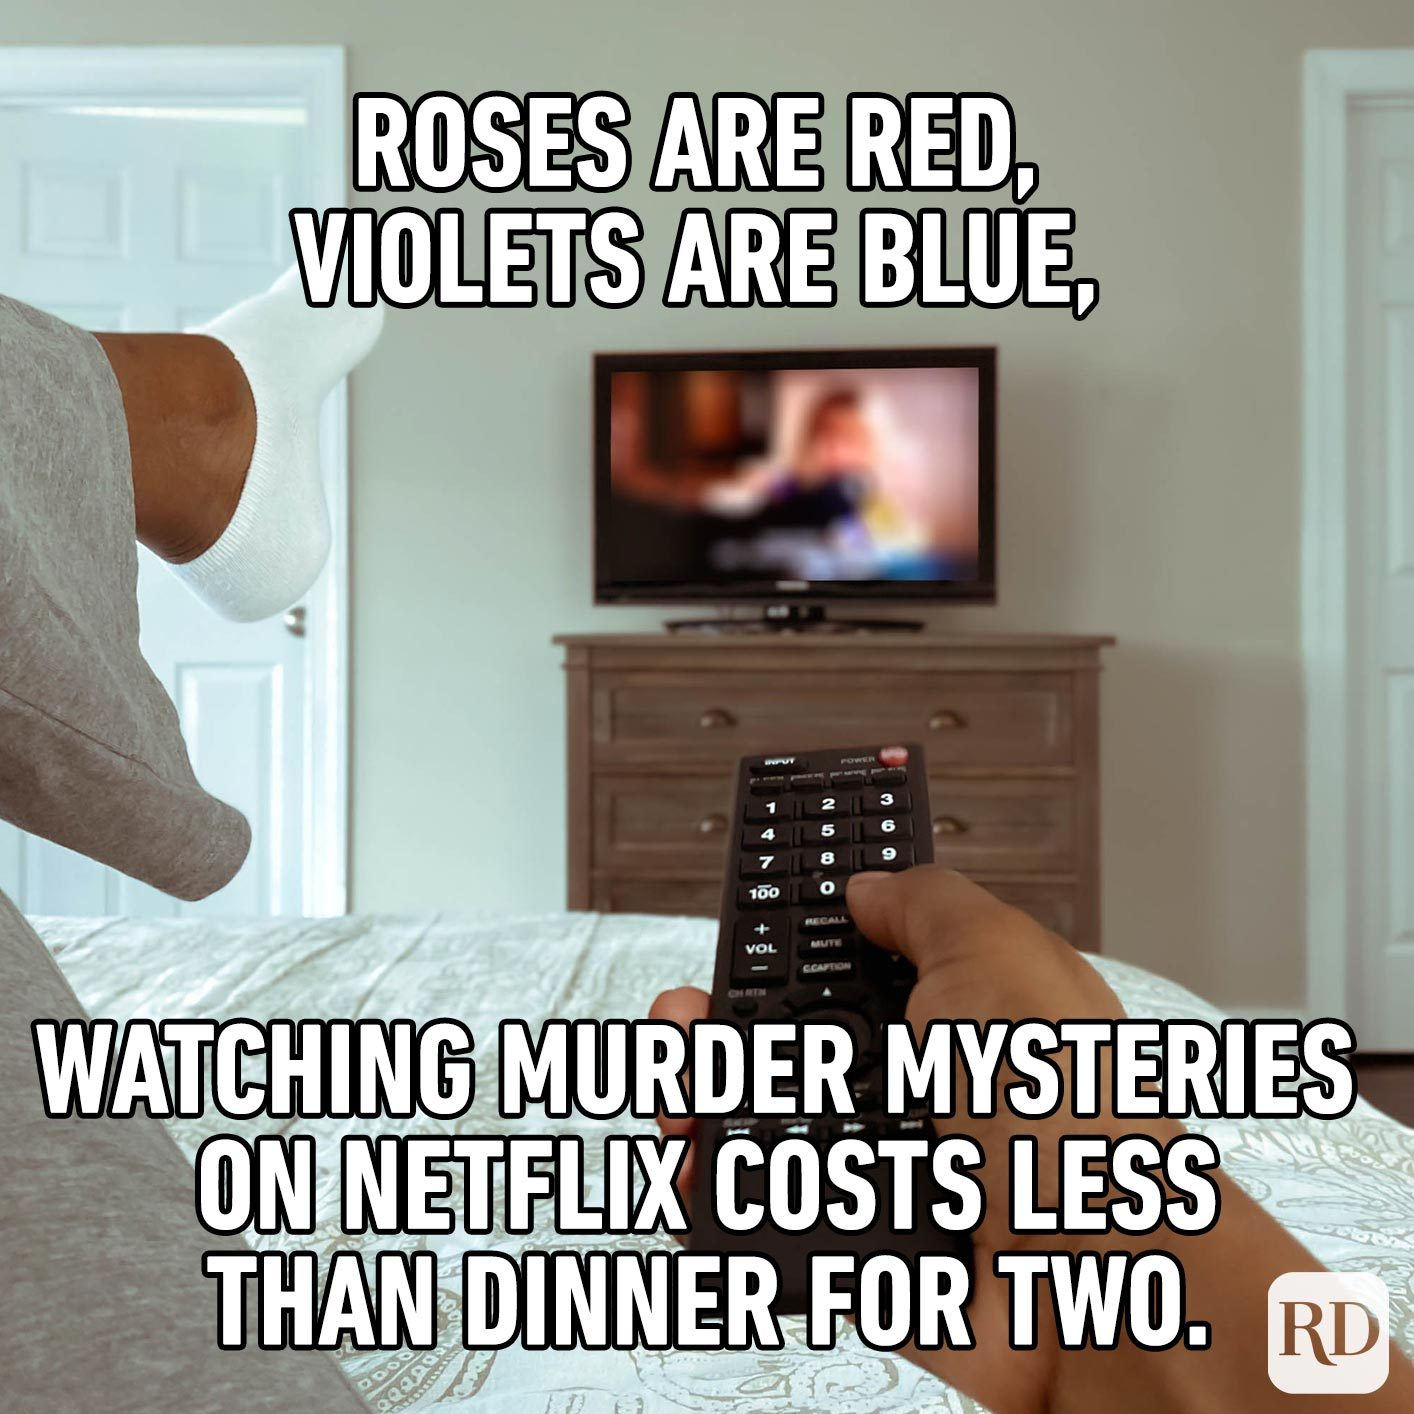 Watching television in bed. Meme text: Roses are red, violets are blue, watching murder mysteries on Netflix costs less than dinner for two.